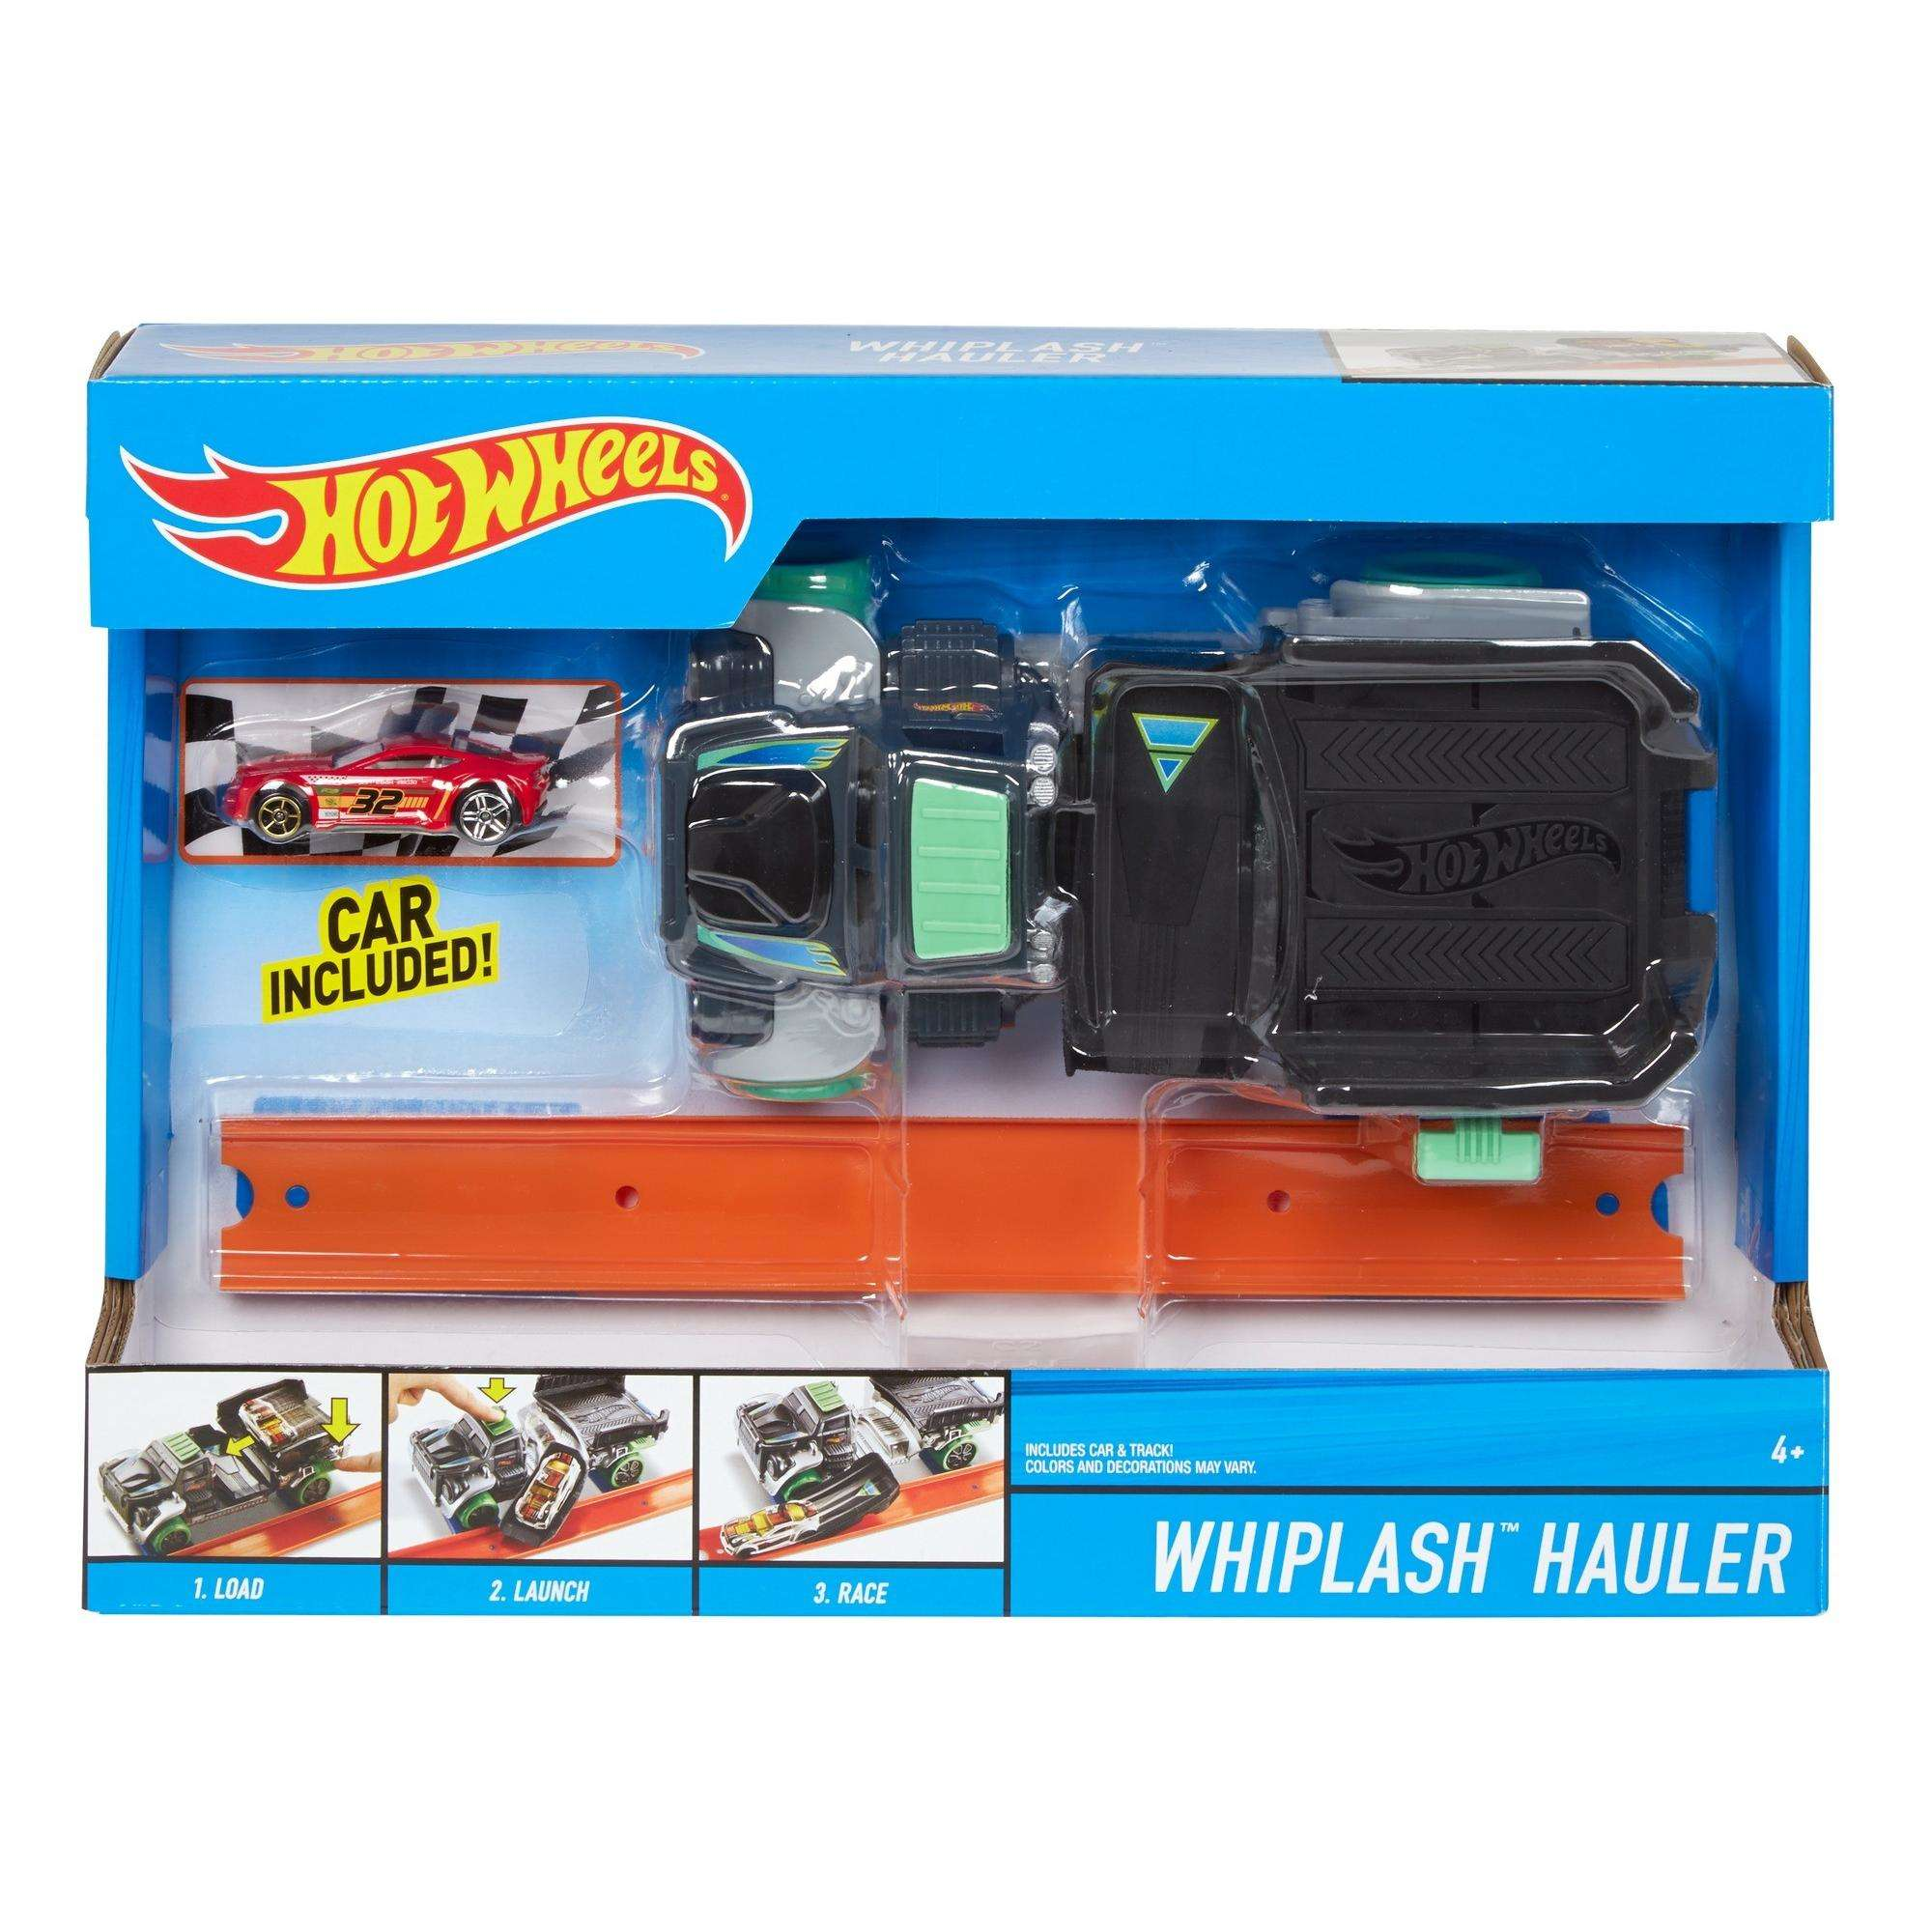 Hot Wheels Whiplash Hauler Vehicle by Mattel